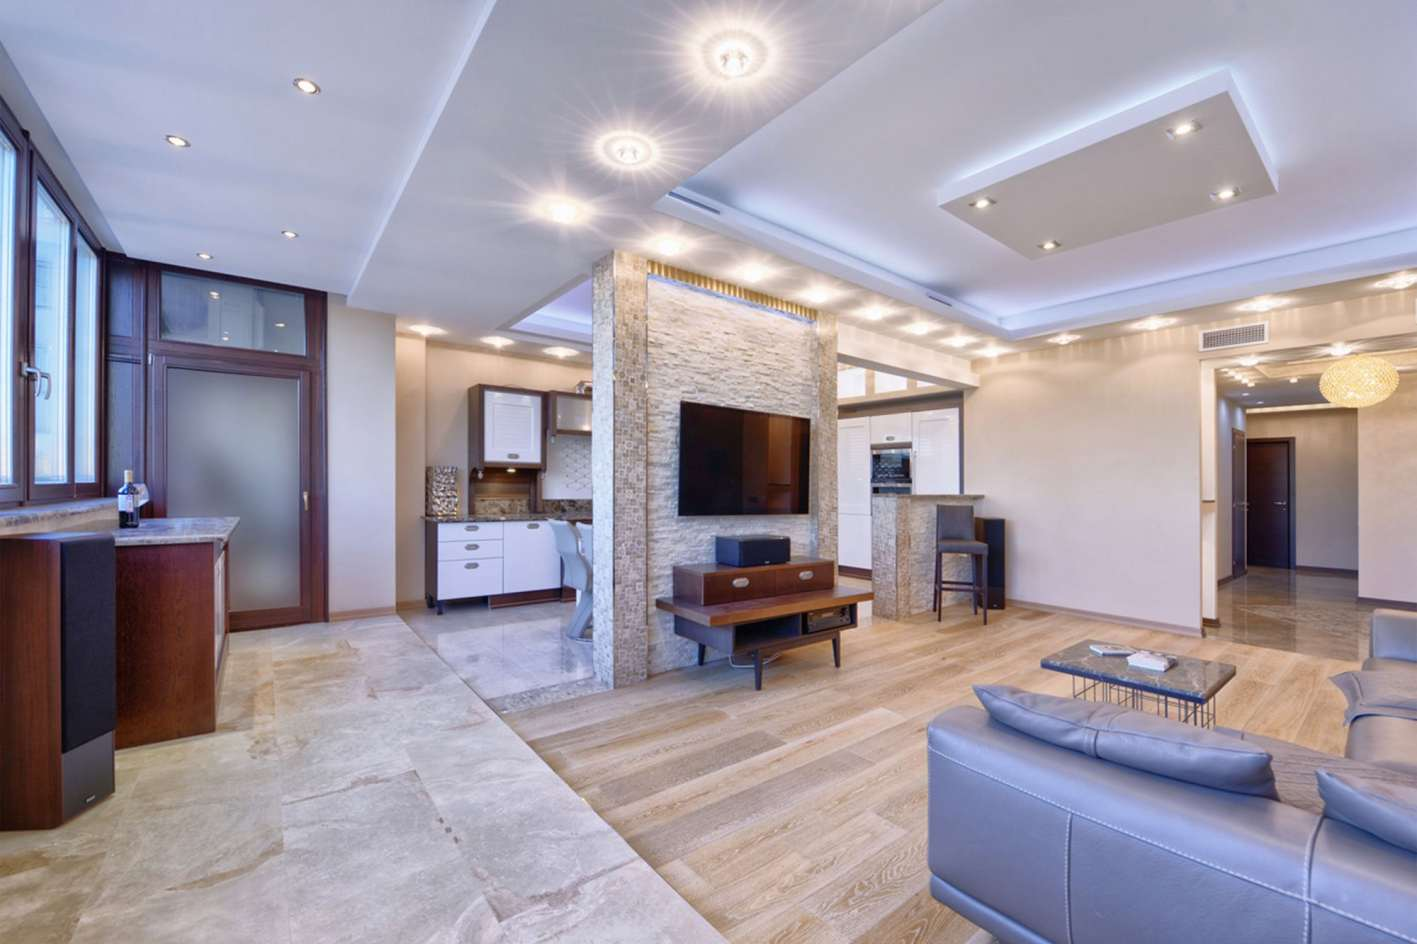 New Style Interiors Offers Outstanding Interior Design Consulting Services in Dubai & New Style Interiors Offers Outstanding Interior Design Consulting ...